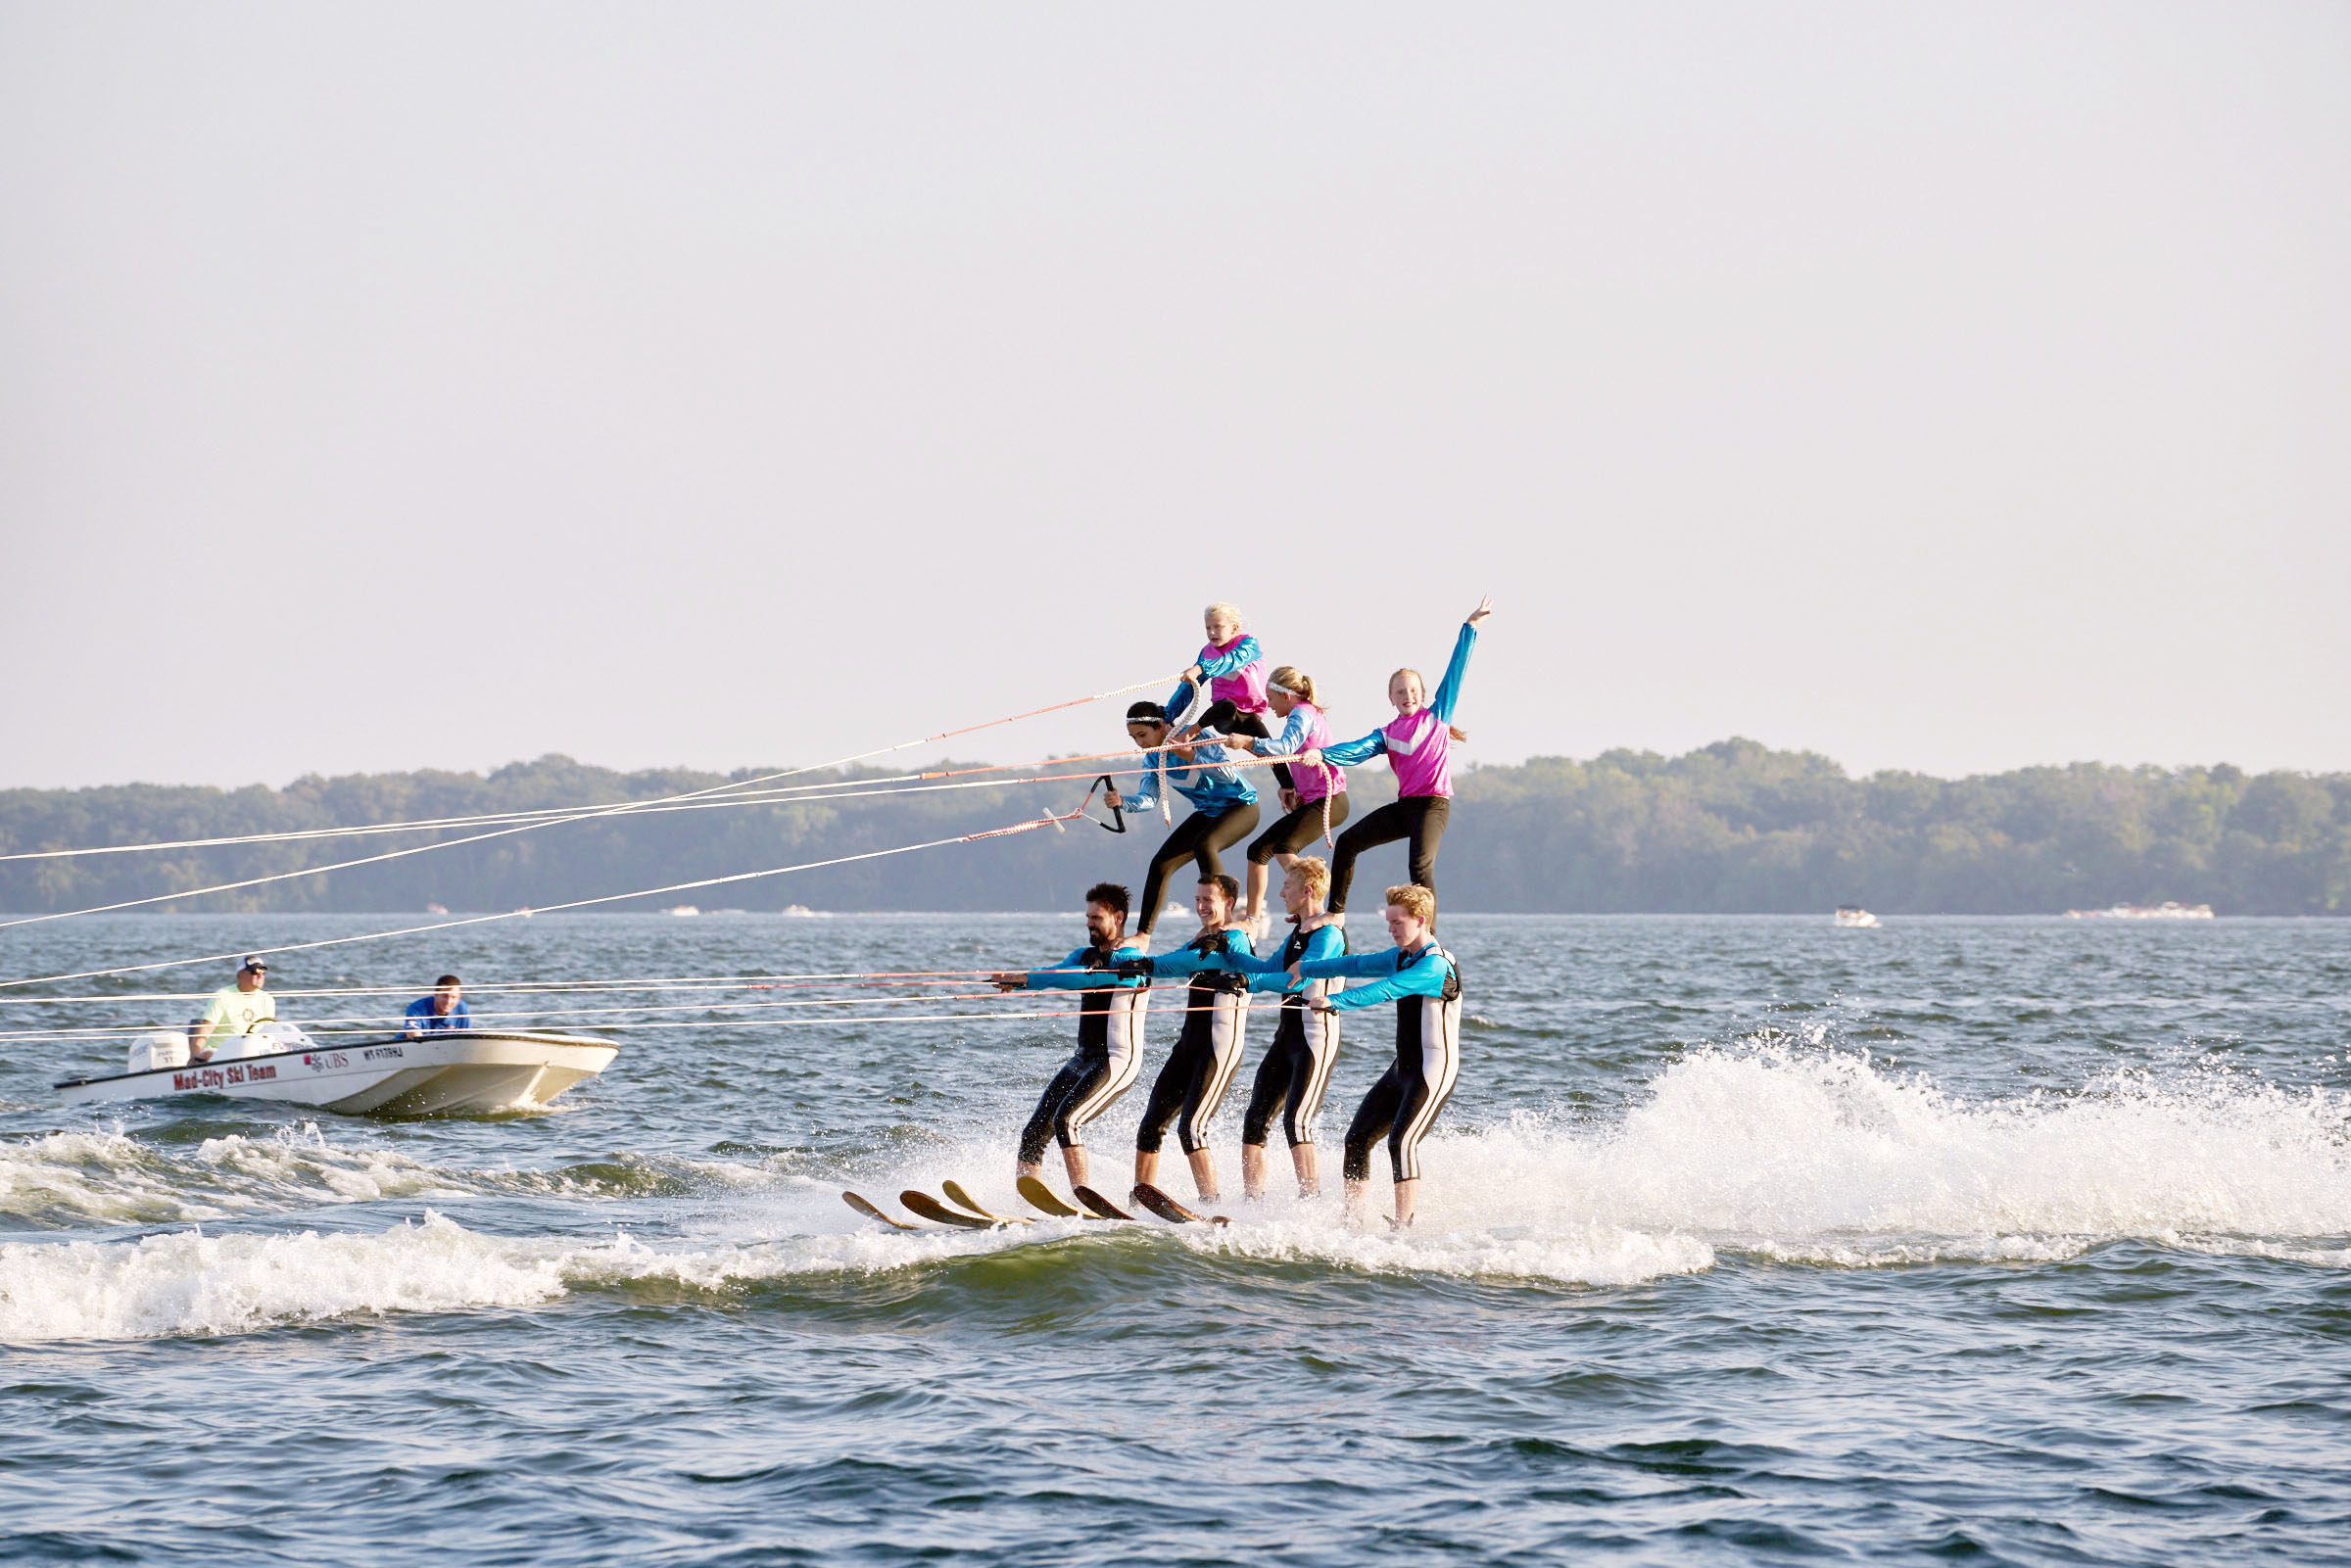 Mad City Ski Team Madison, WI USA 6 September 2015